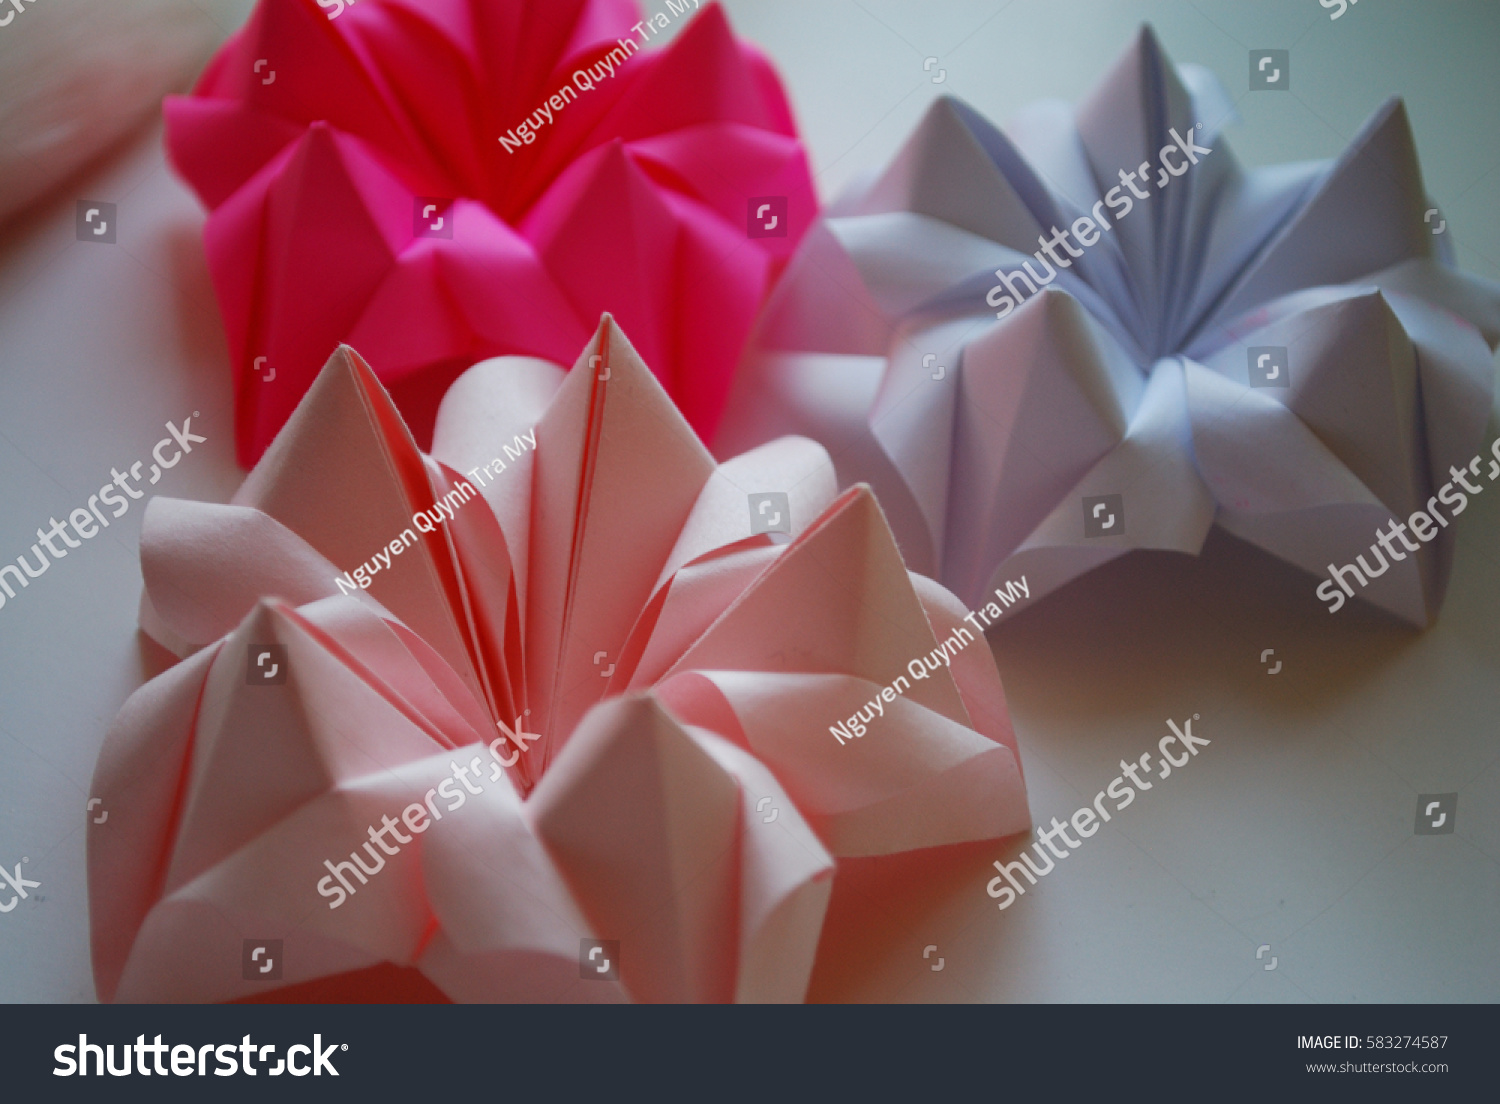 How to make an origami poinsettia flower: page 2 | 1104x1500